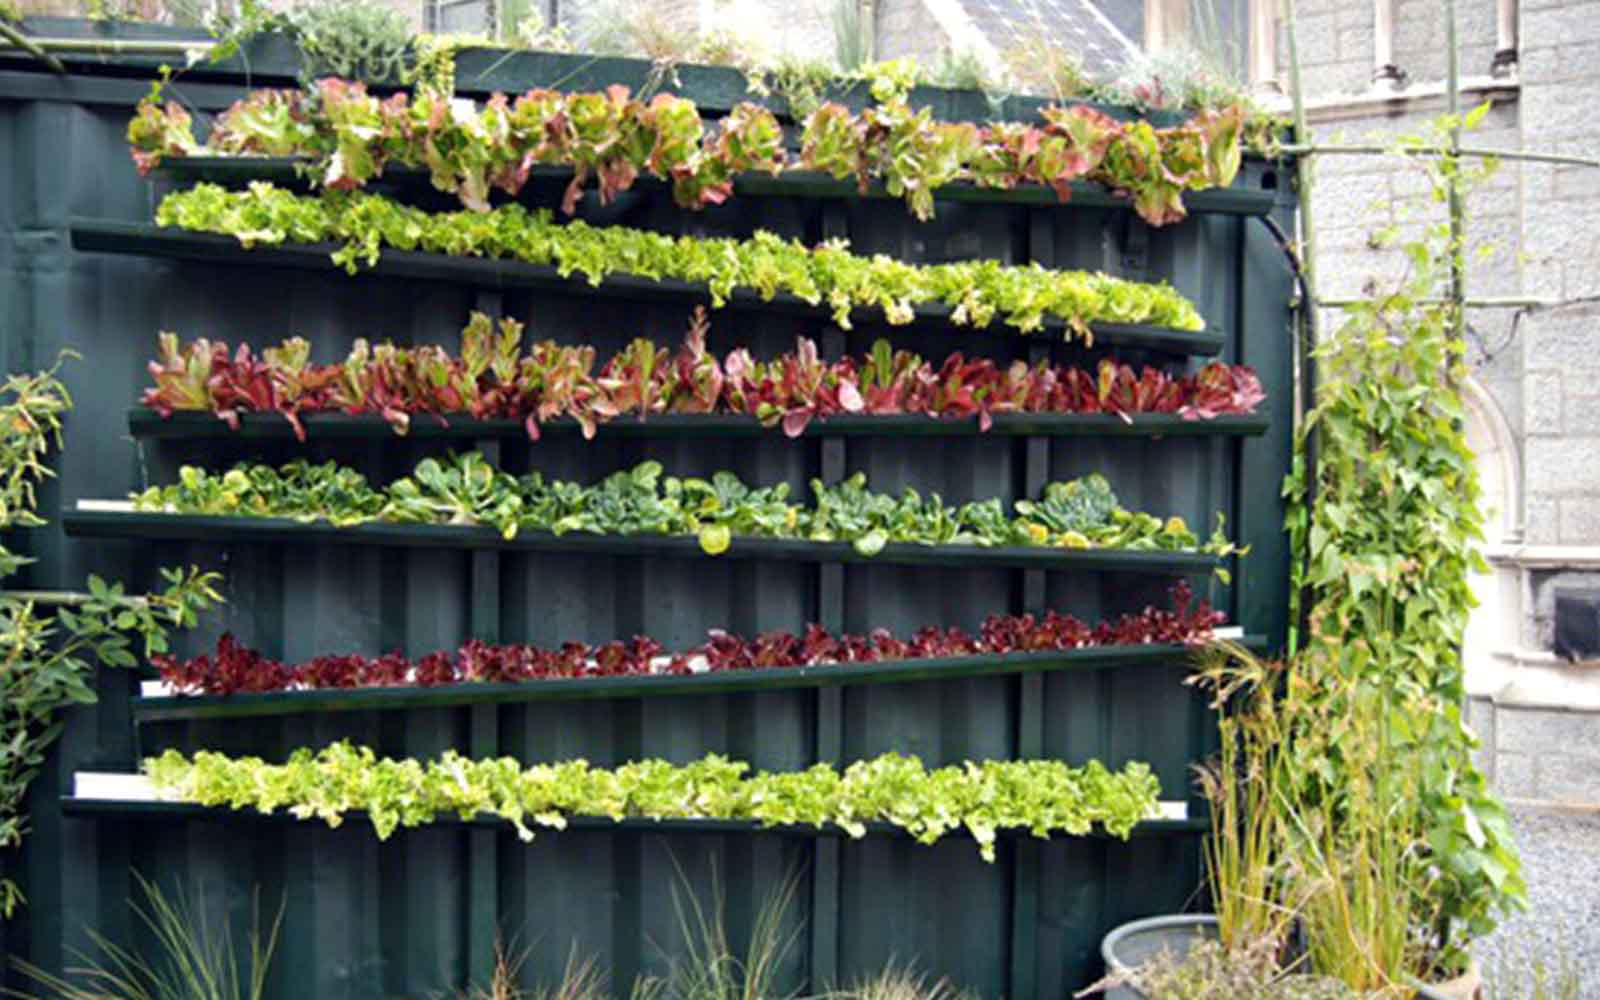 GrowFood - Vertical gardening